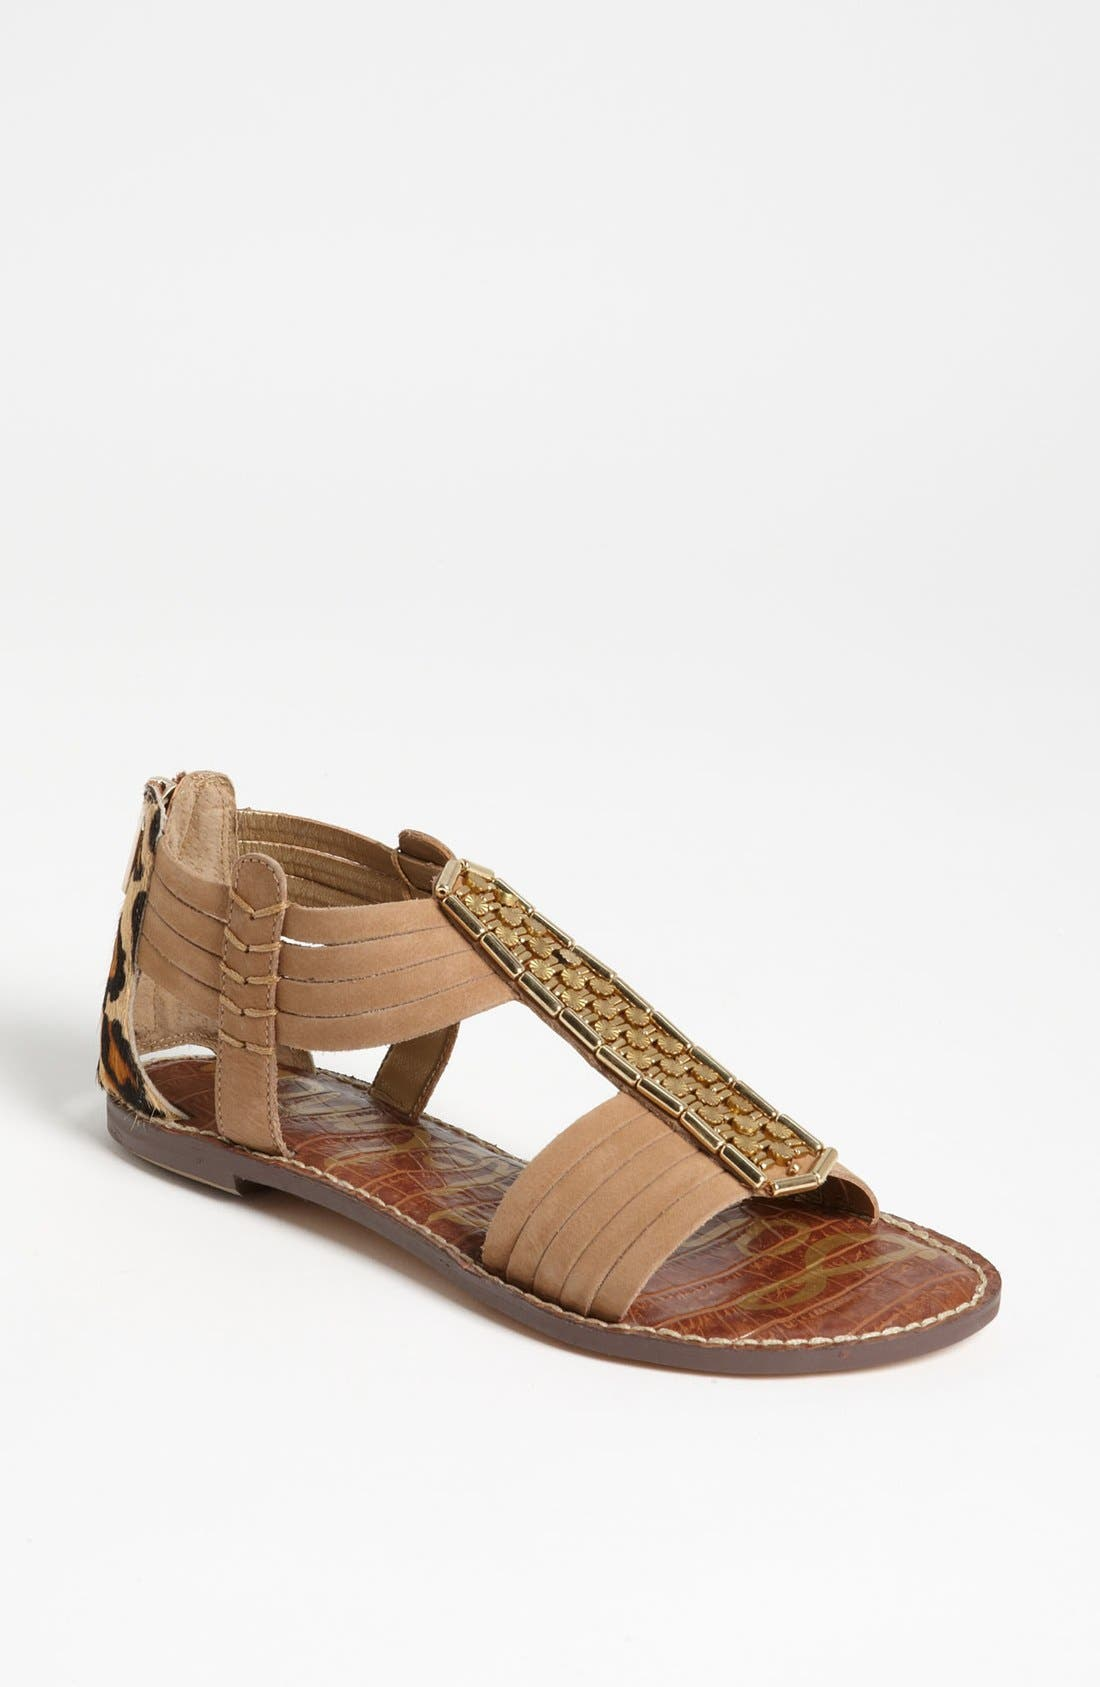 Alternate Image 1 Selected - Sam Edelman Embellished Sandal